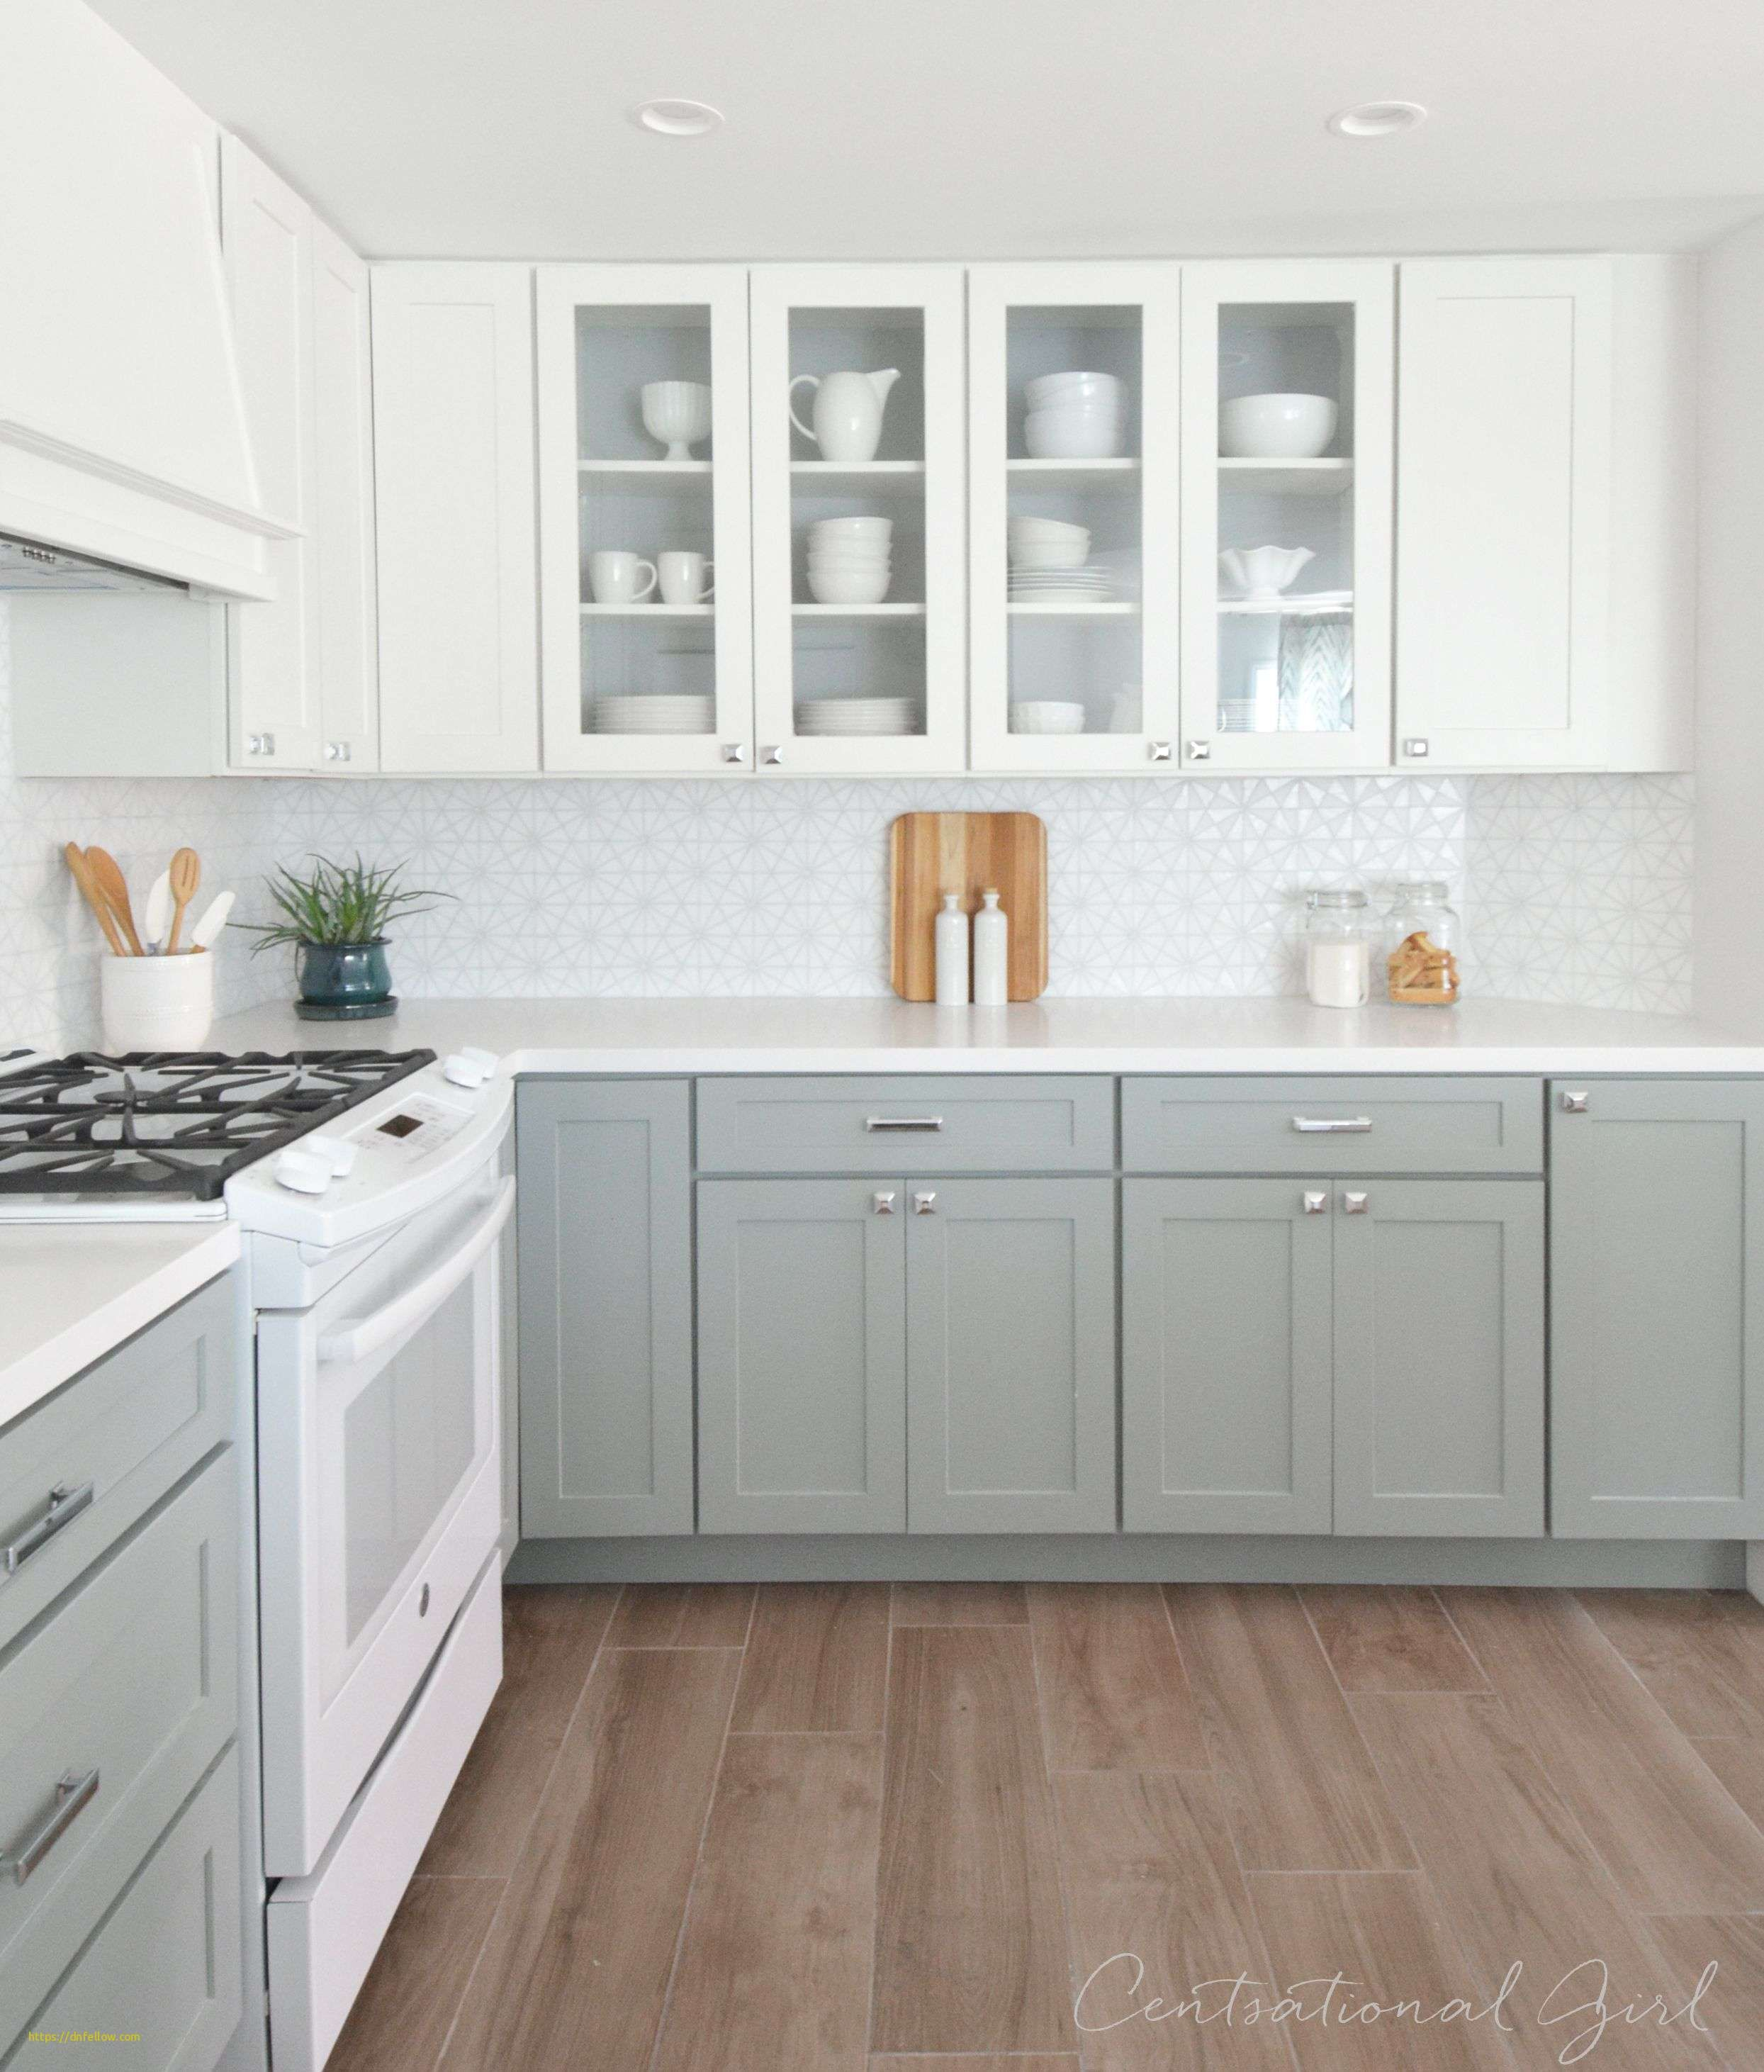 Awesome Gray Bottom Cabinets White Top Cabinets Diy Kitchen Renovation Kitchen Renovation Kitchen Cabinet Design